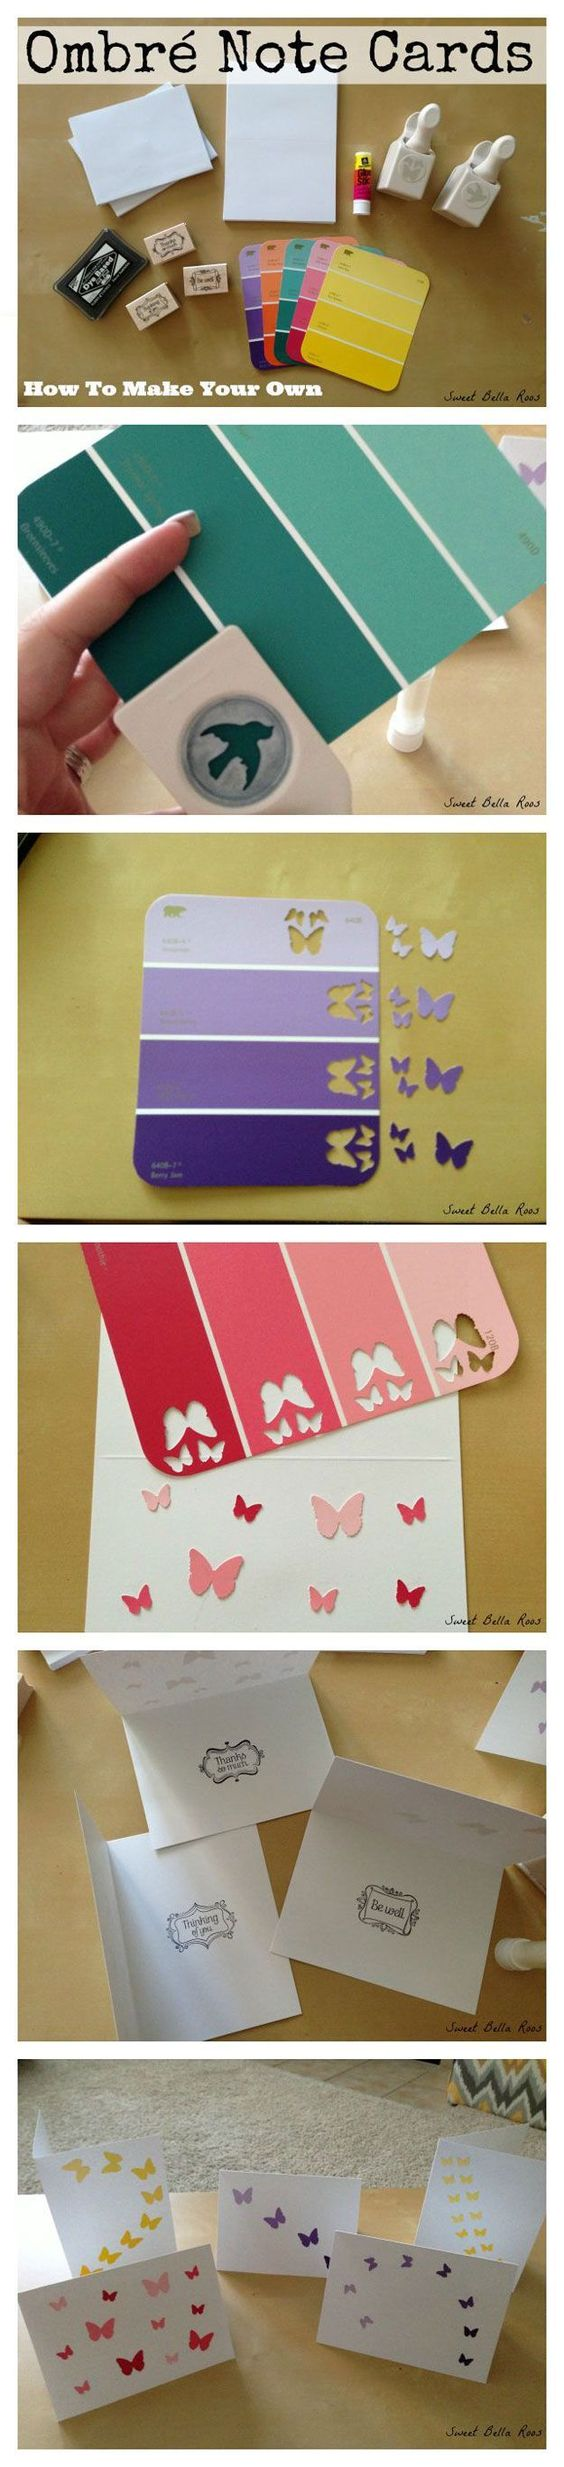 Cheap and Easy Scrapbook Making Ideas | Ombre Paint Chip Design by DIY Ready at http://diyready.com/cool-scrapbook-ideas-you-should-make/: